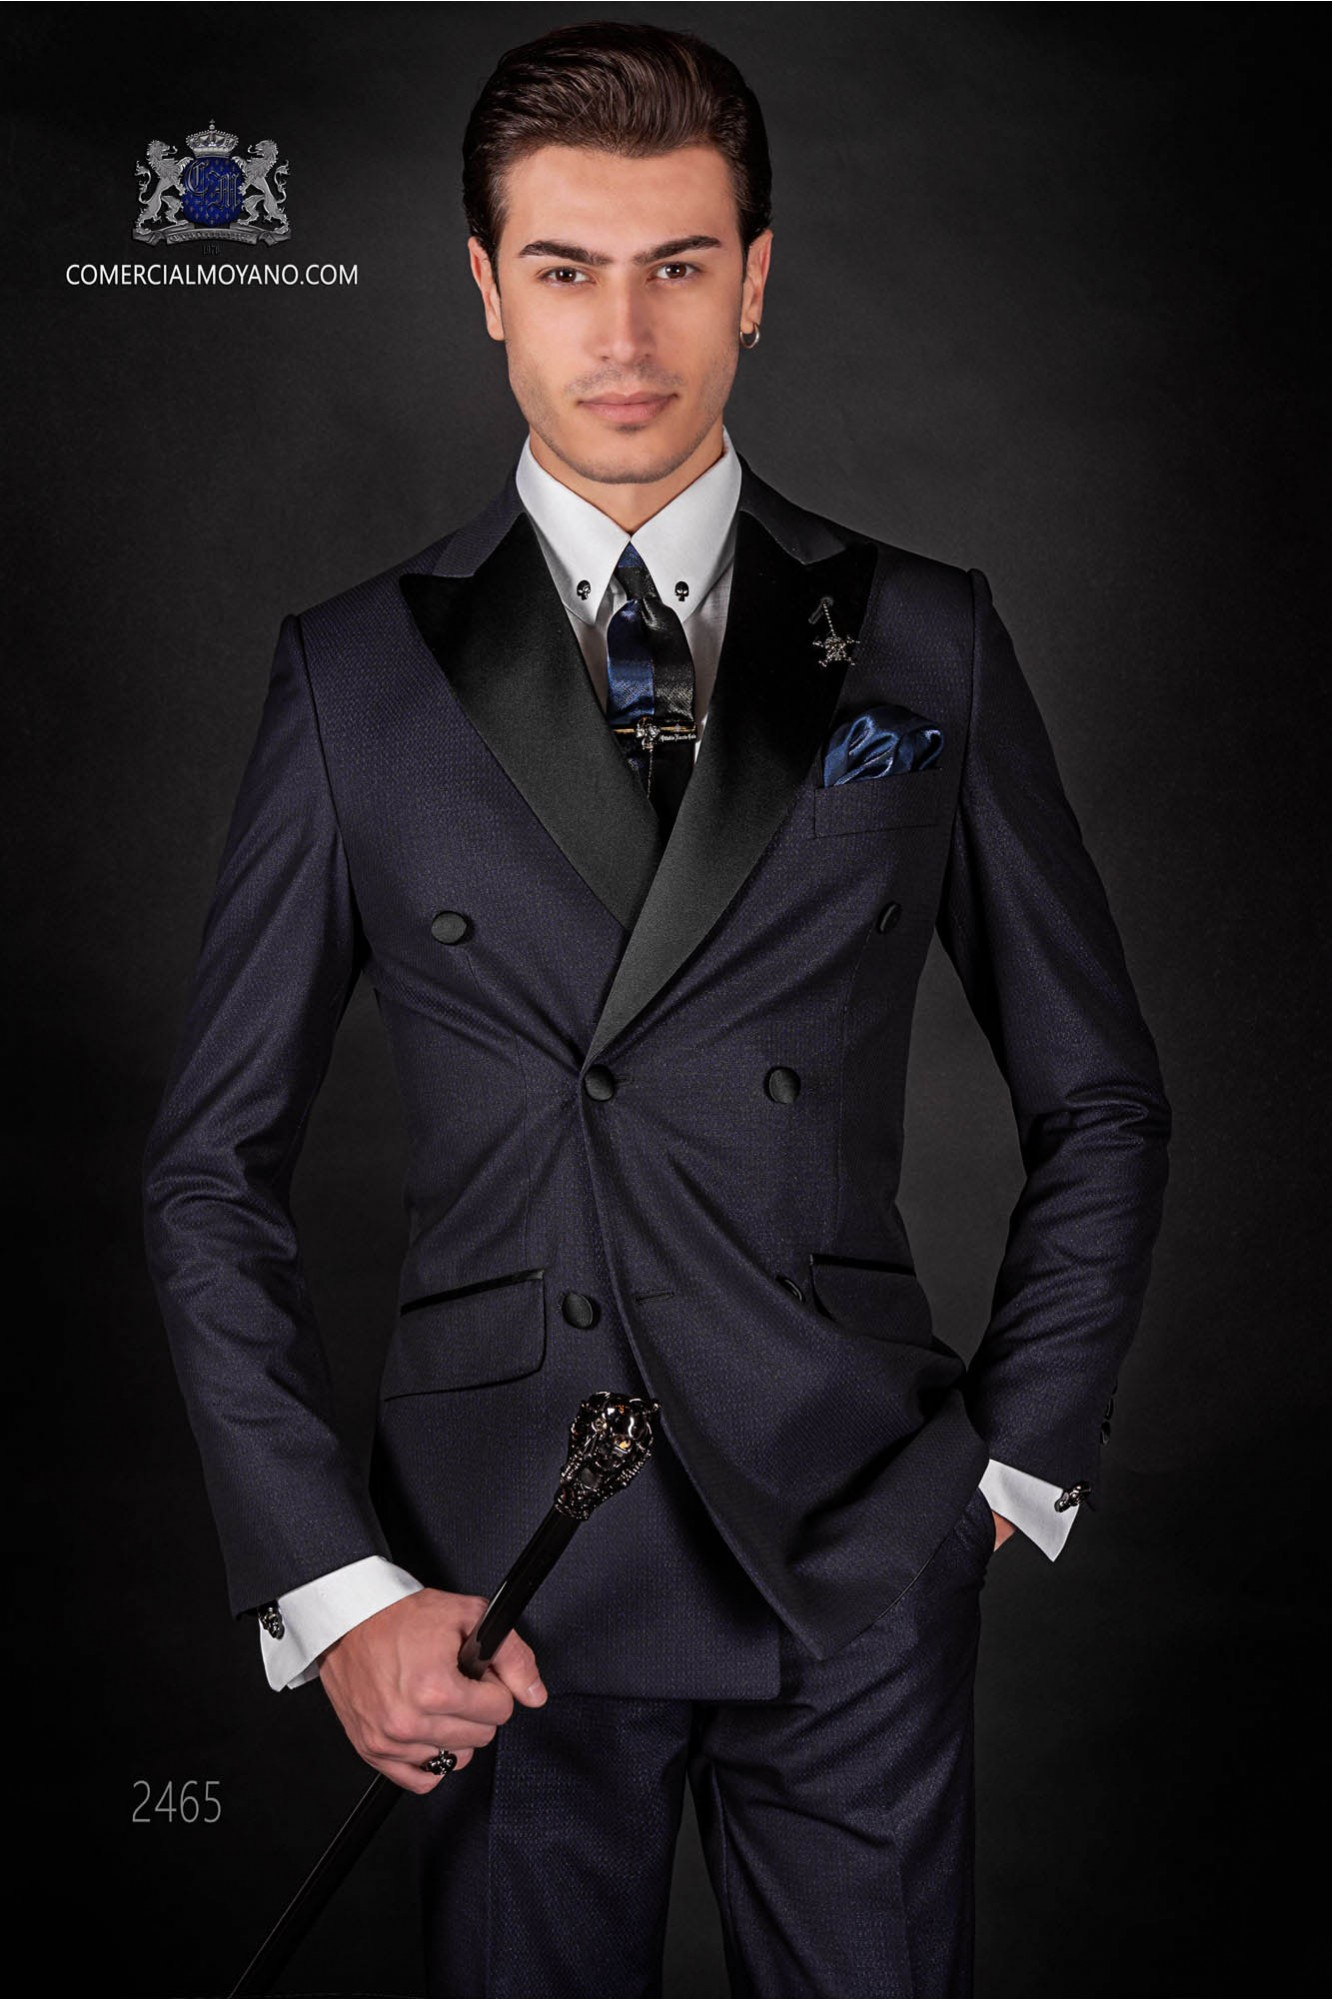 Italian blue fashion double breasted suit Slim fit. Satin peak lapels and 6 buttons. Shiny fabric